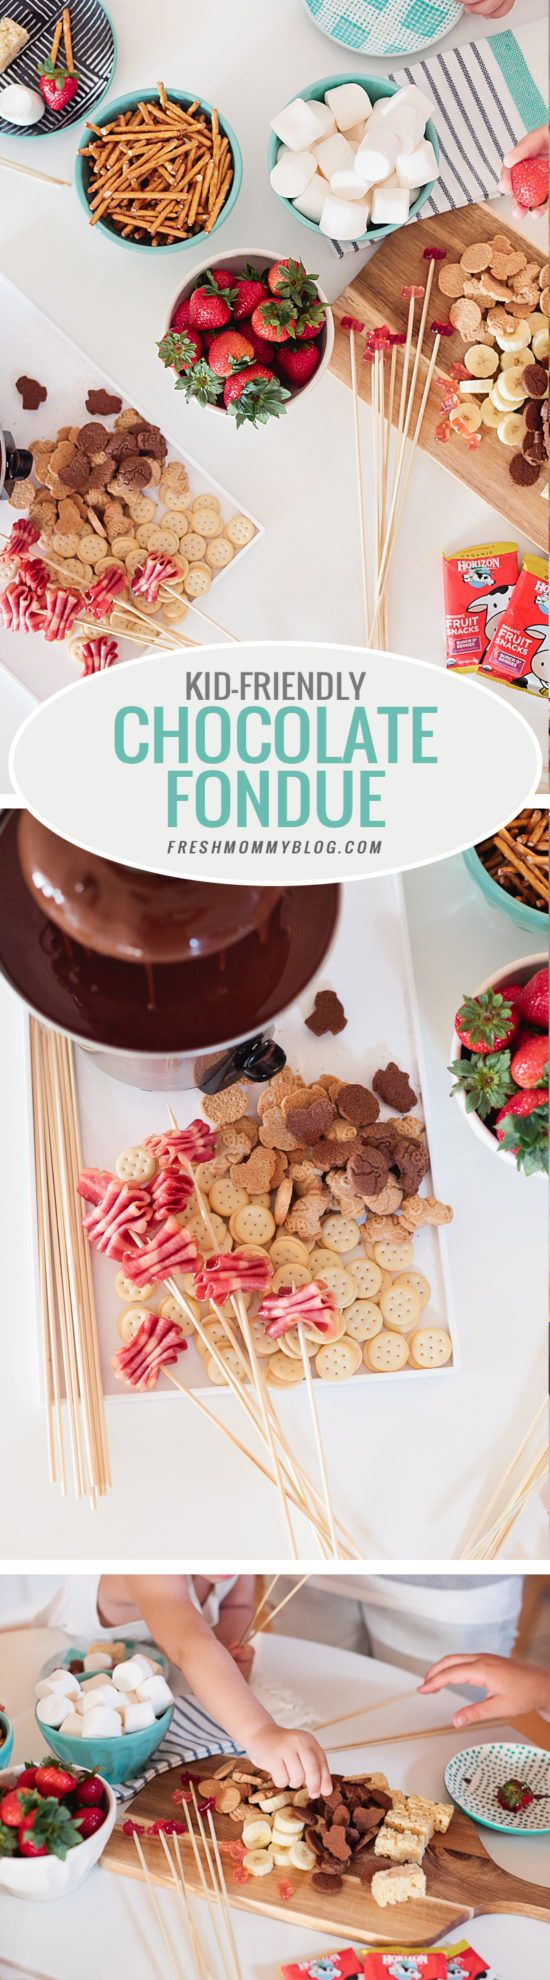 Kid Friendly Fondue Party - Just two simple ingredients gives you deliciously smooth chocolate fondue for your next party or after school snack and serve with your favorite snacks for a kid friendly fondue (fountain not required, but it is totally fun right?!) #horizonorganic #ad